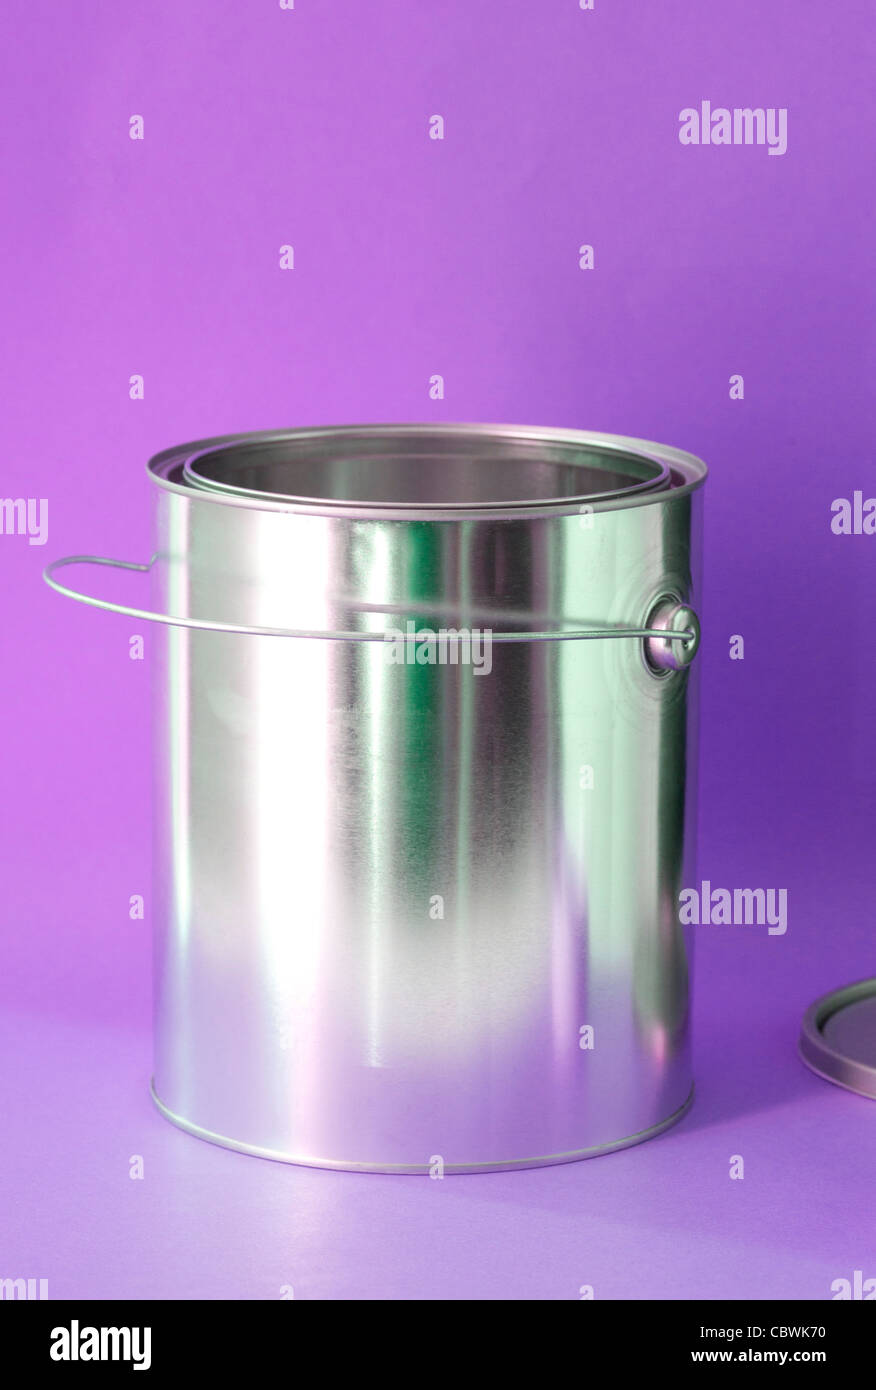 open can of paint on purple background - Stock Image